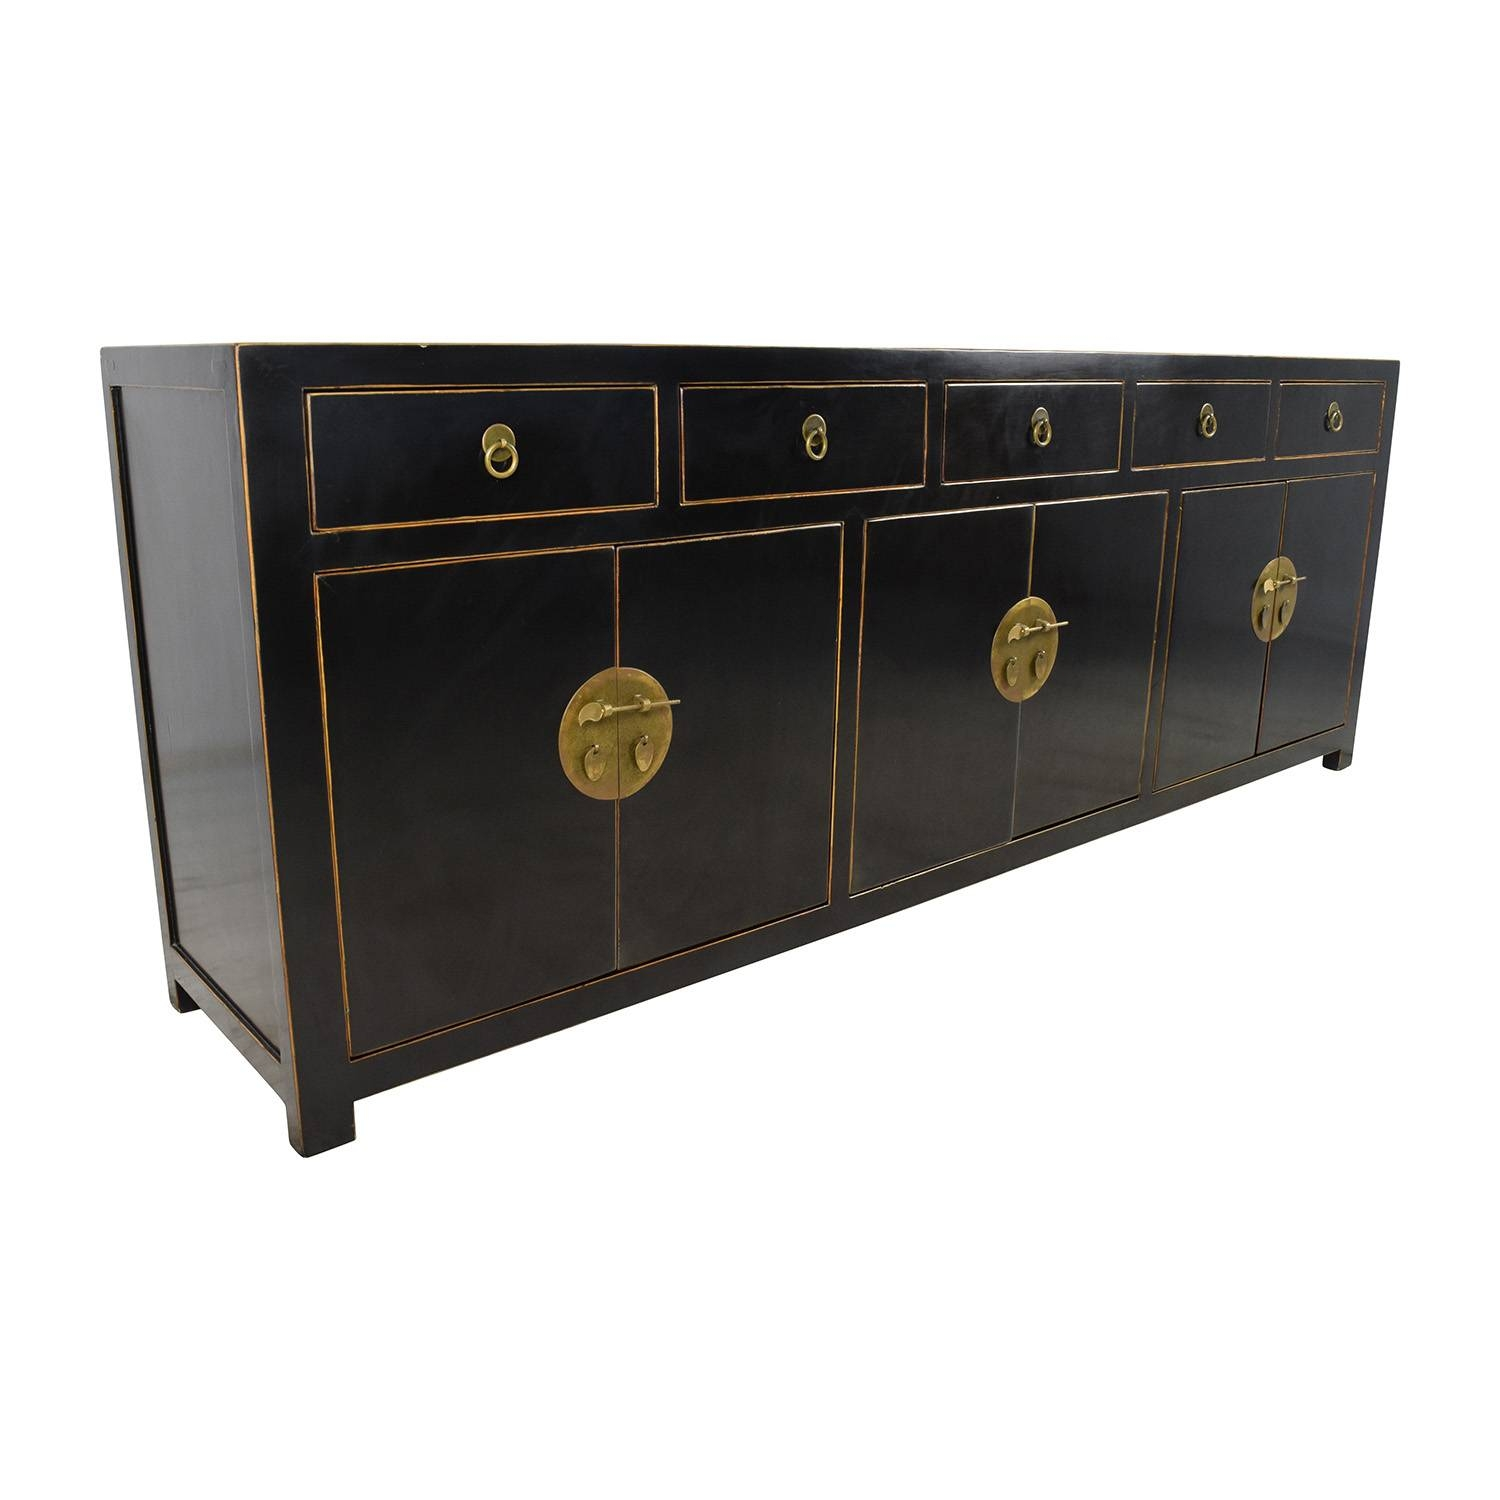 85% Off – Custom Made Black Drawer And Cabinet Sideboard / Storage Pertaining To Sideboards And Cabinets (View 13 of 15)